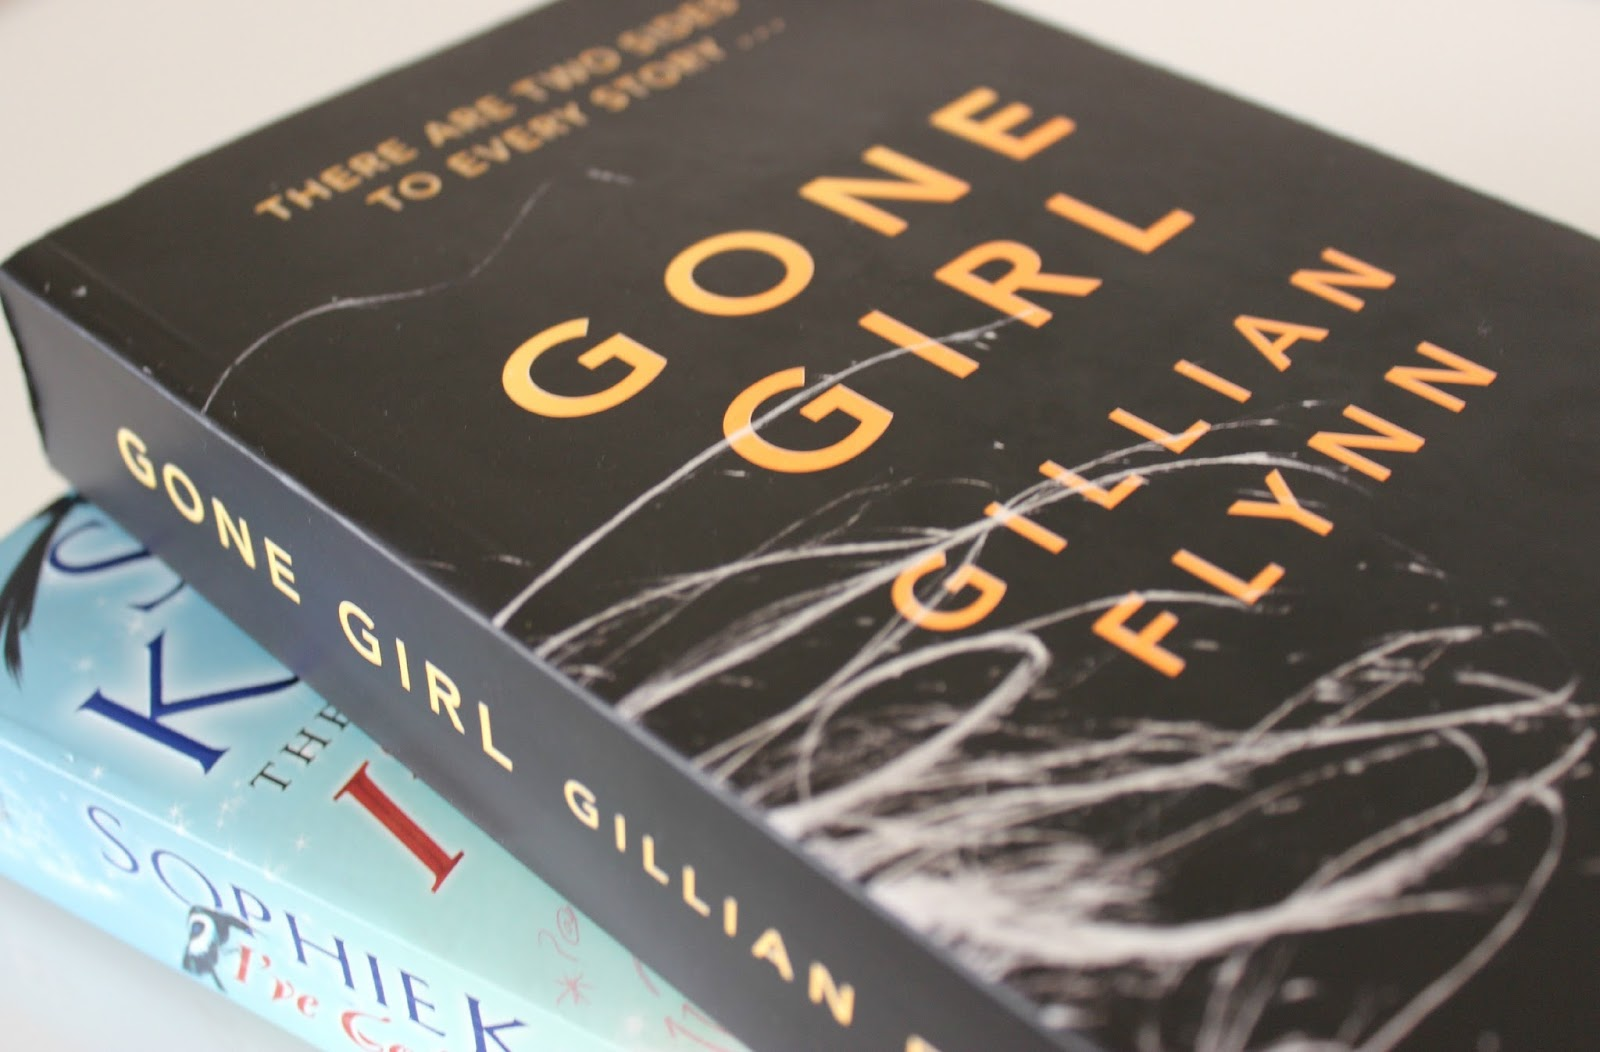 A picture of Gone Girl by Gillian Flynn